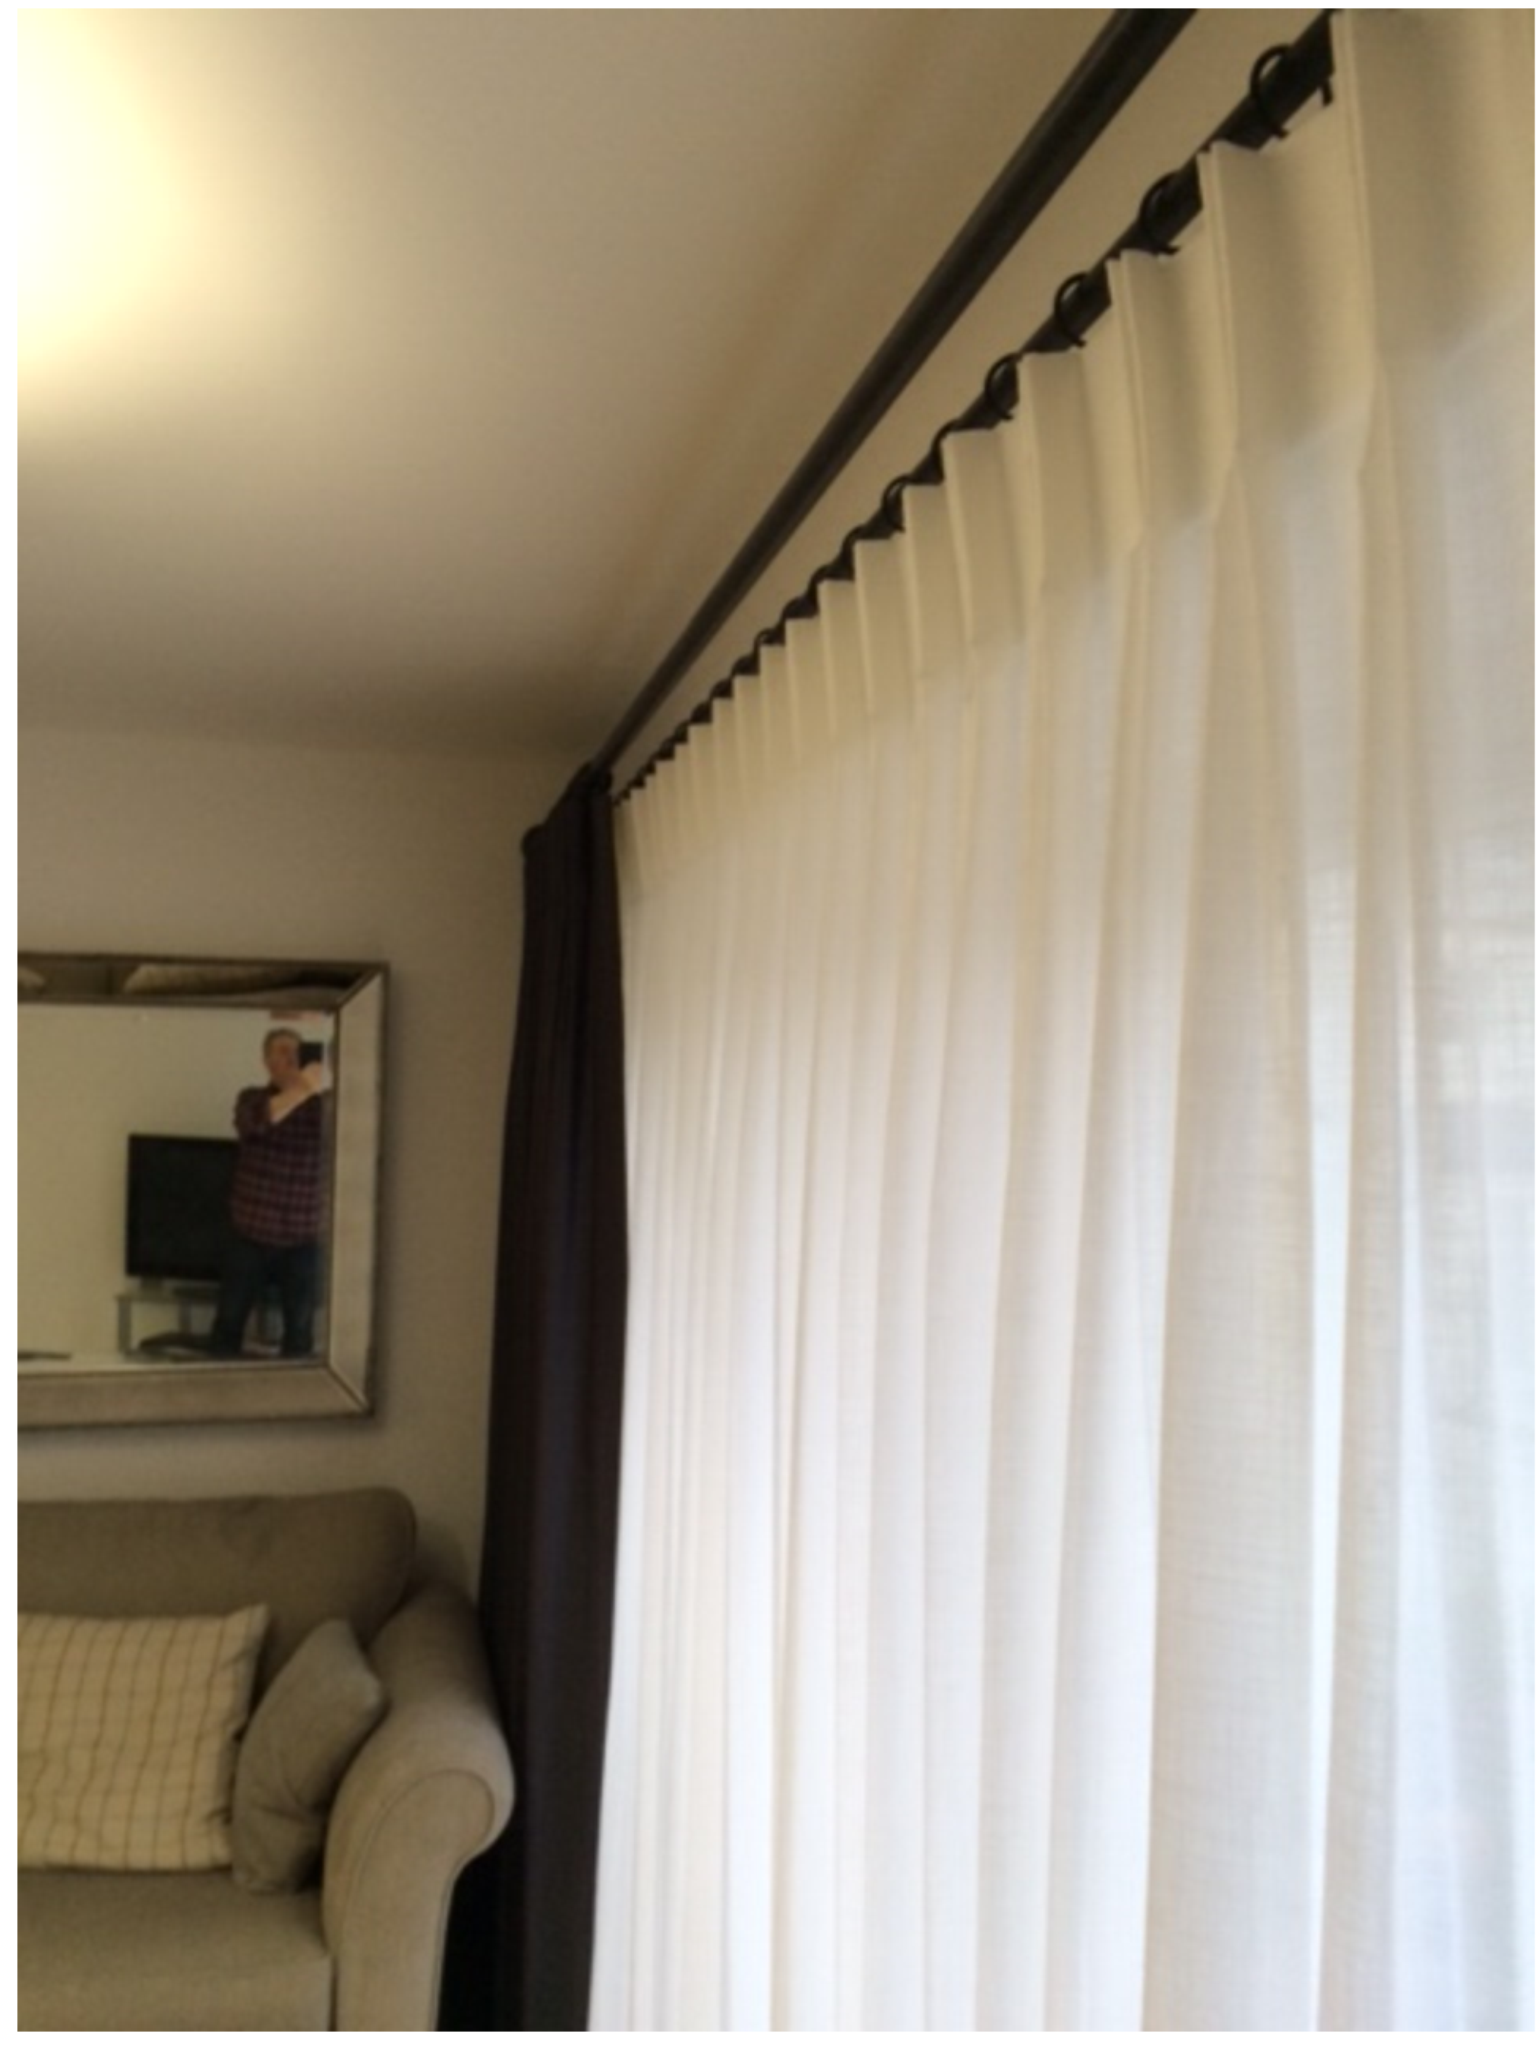 Door Curtain Pole Bi Fold Door Double Curtain Pole System Allows Both A Sheer